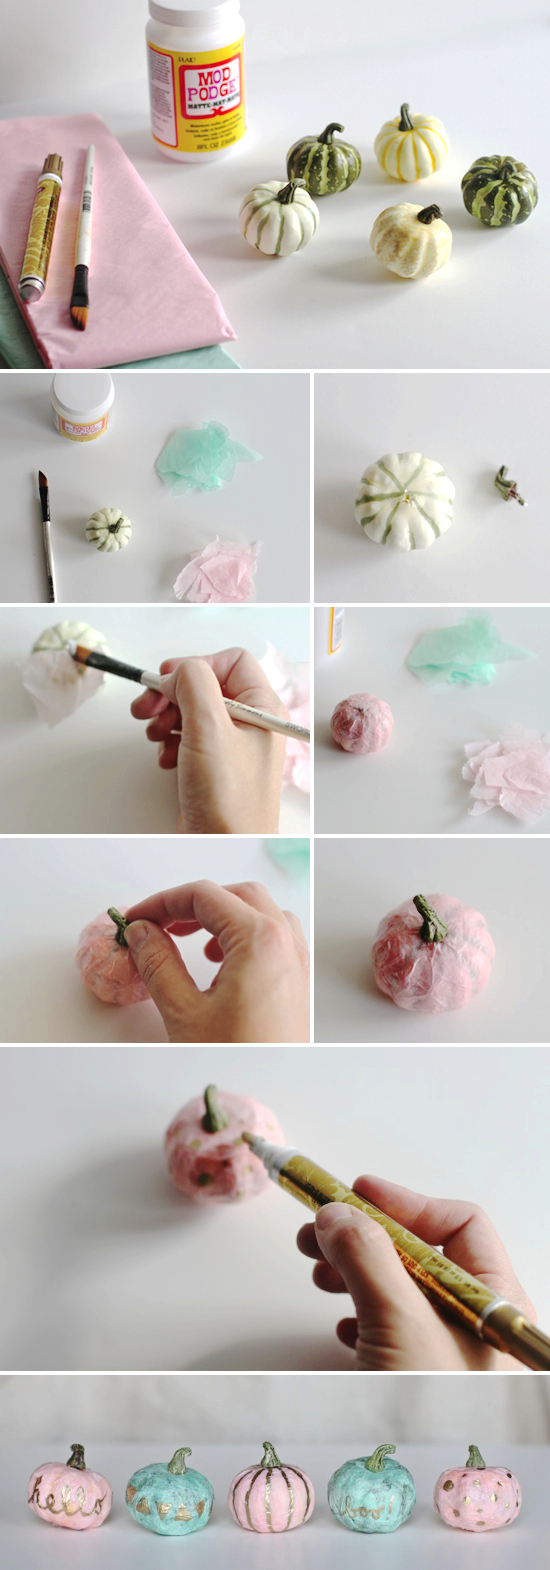 Halloween Diy How To Make Tissue Paper Mini Pumpkins Paper And Stitch